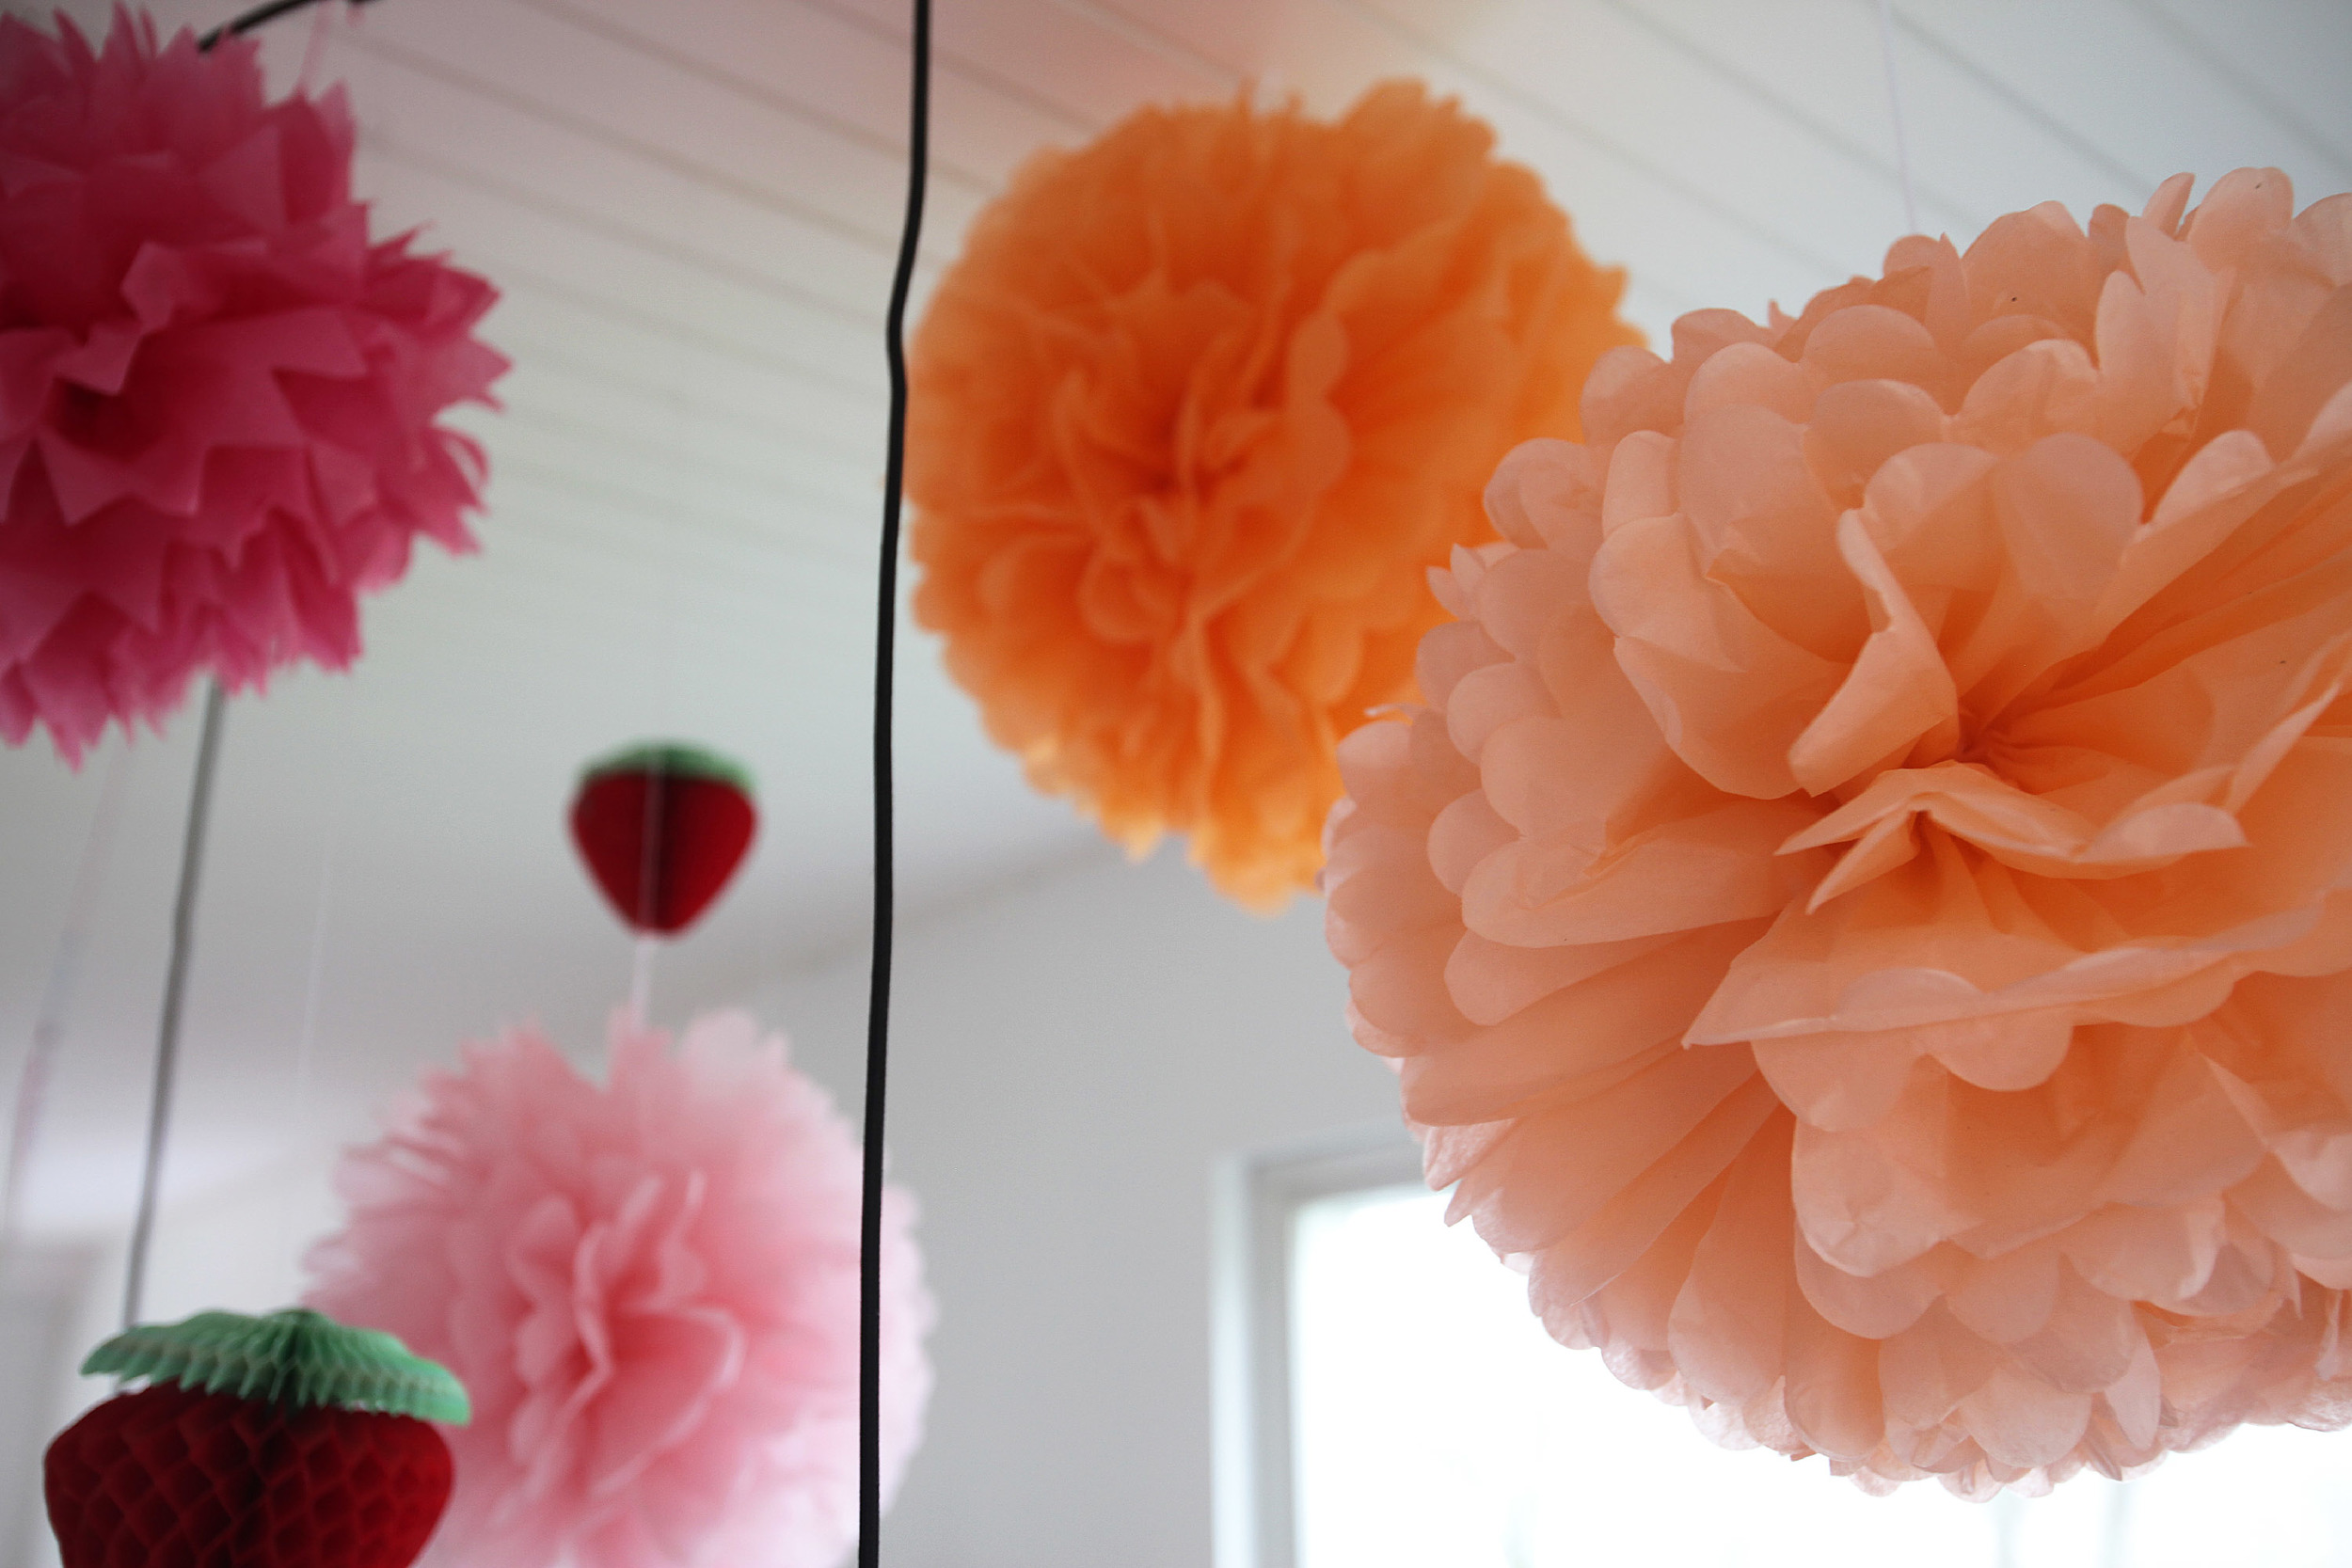 Anna_Lidstrom_Anotherblog_Paperdecoration2.JPG